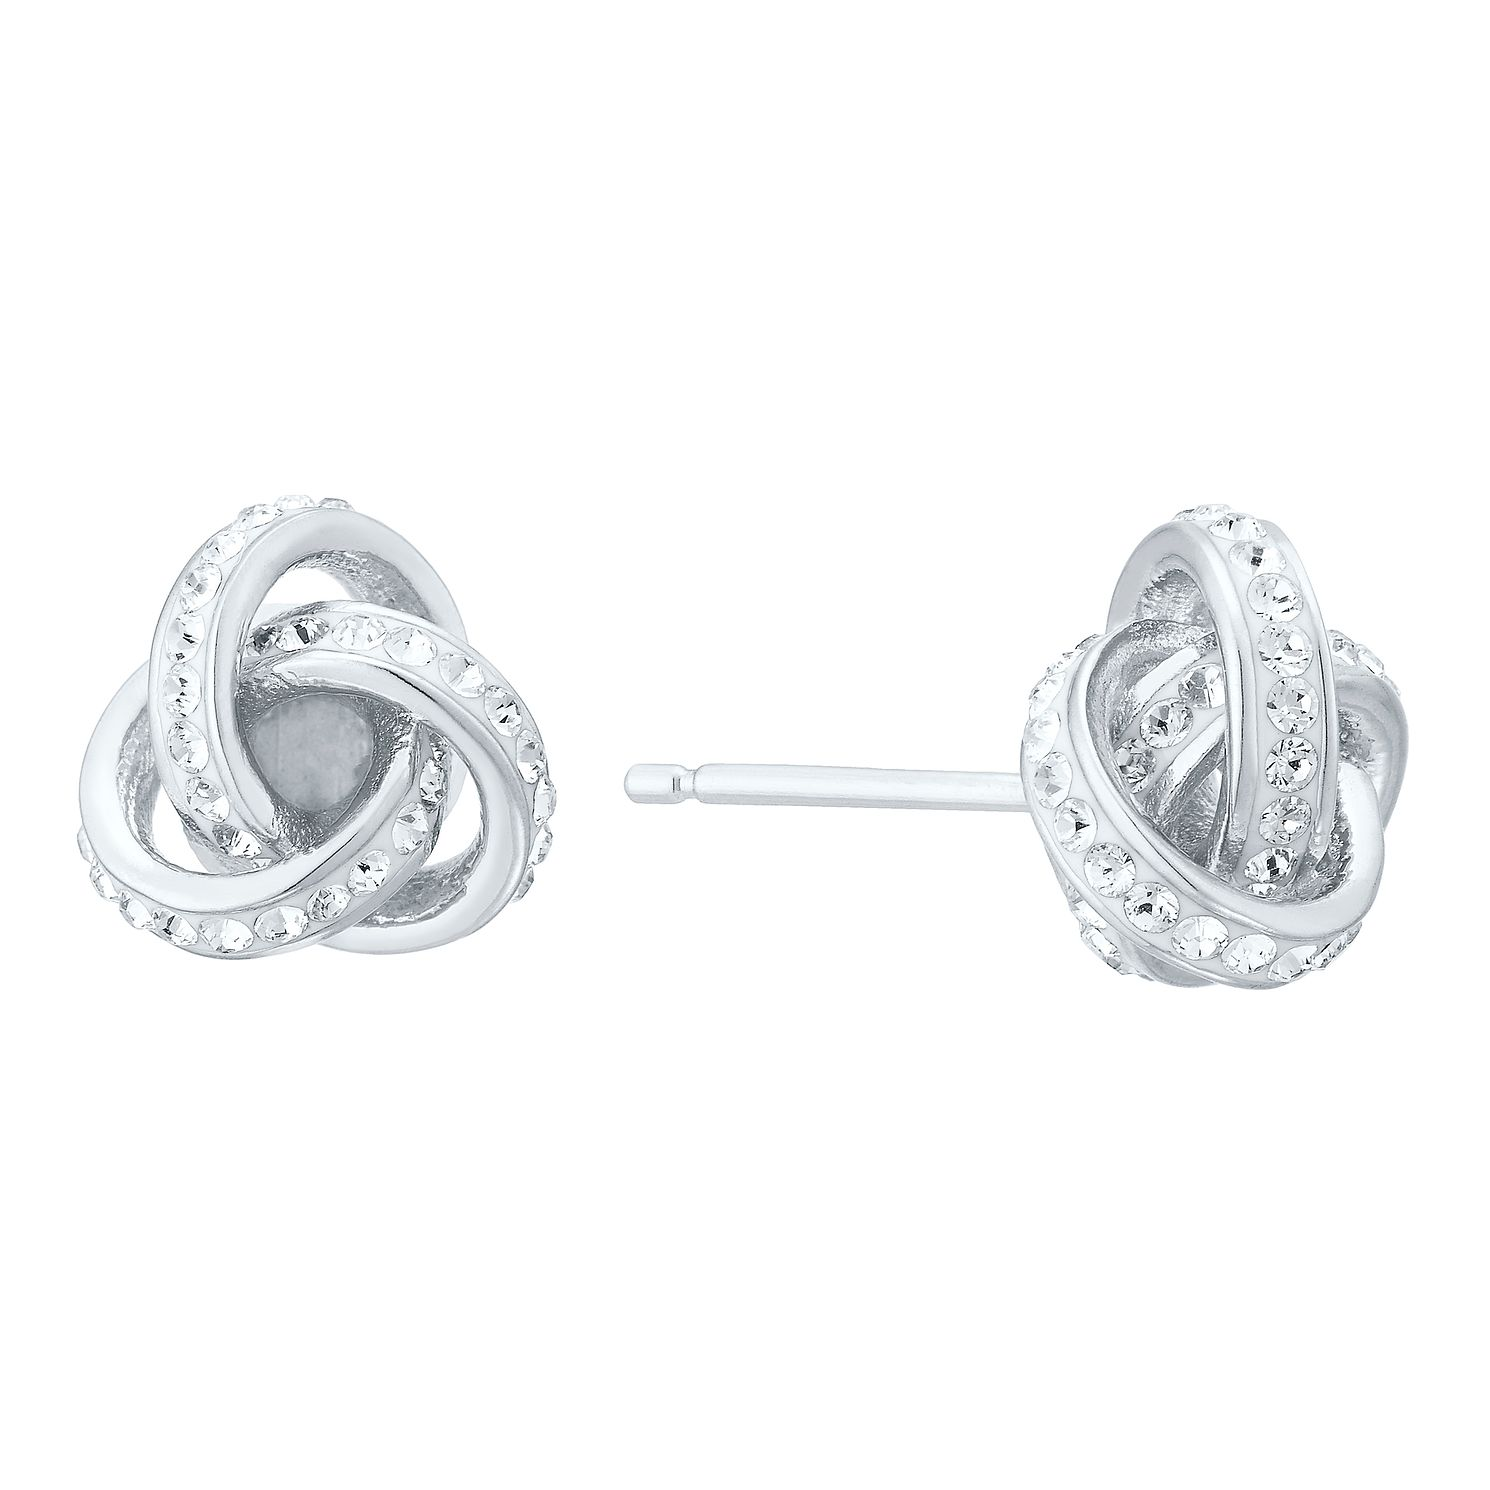 Evoke Silver Crystal Knot Stud Earrings - Product number 8108374